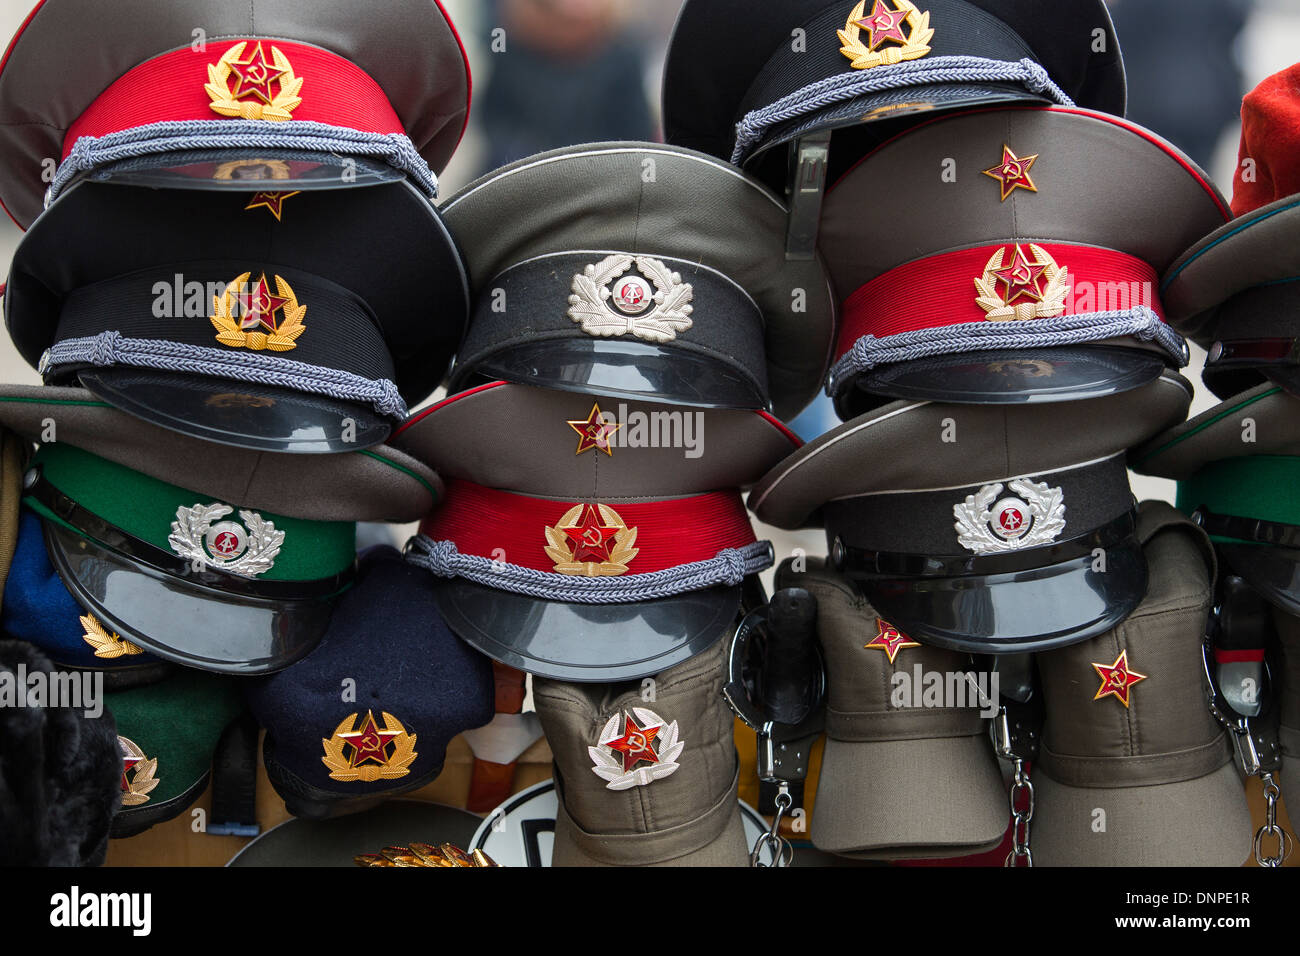 05/12/2013 Russian army caps and fur hats for sale on a market stall, Berlin, Germany - Stock Image